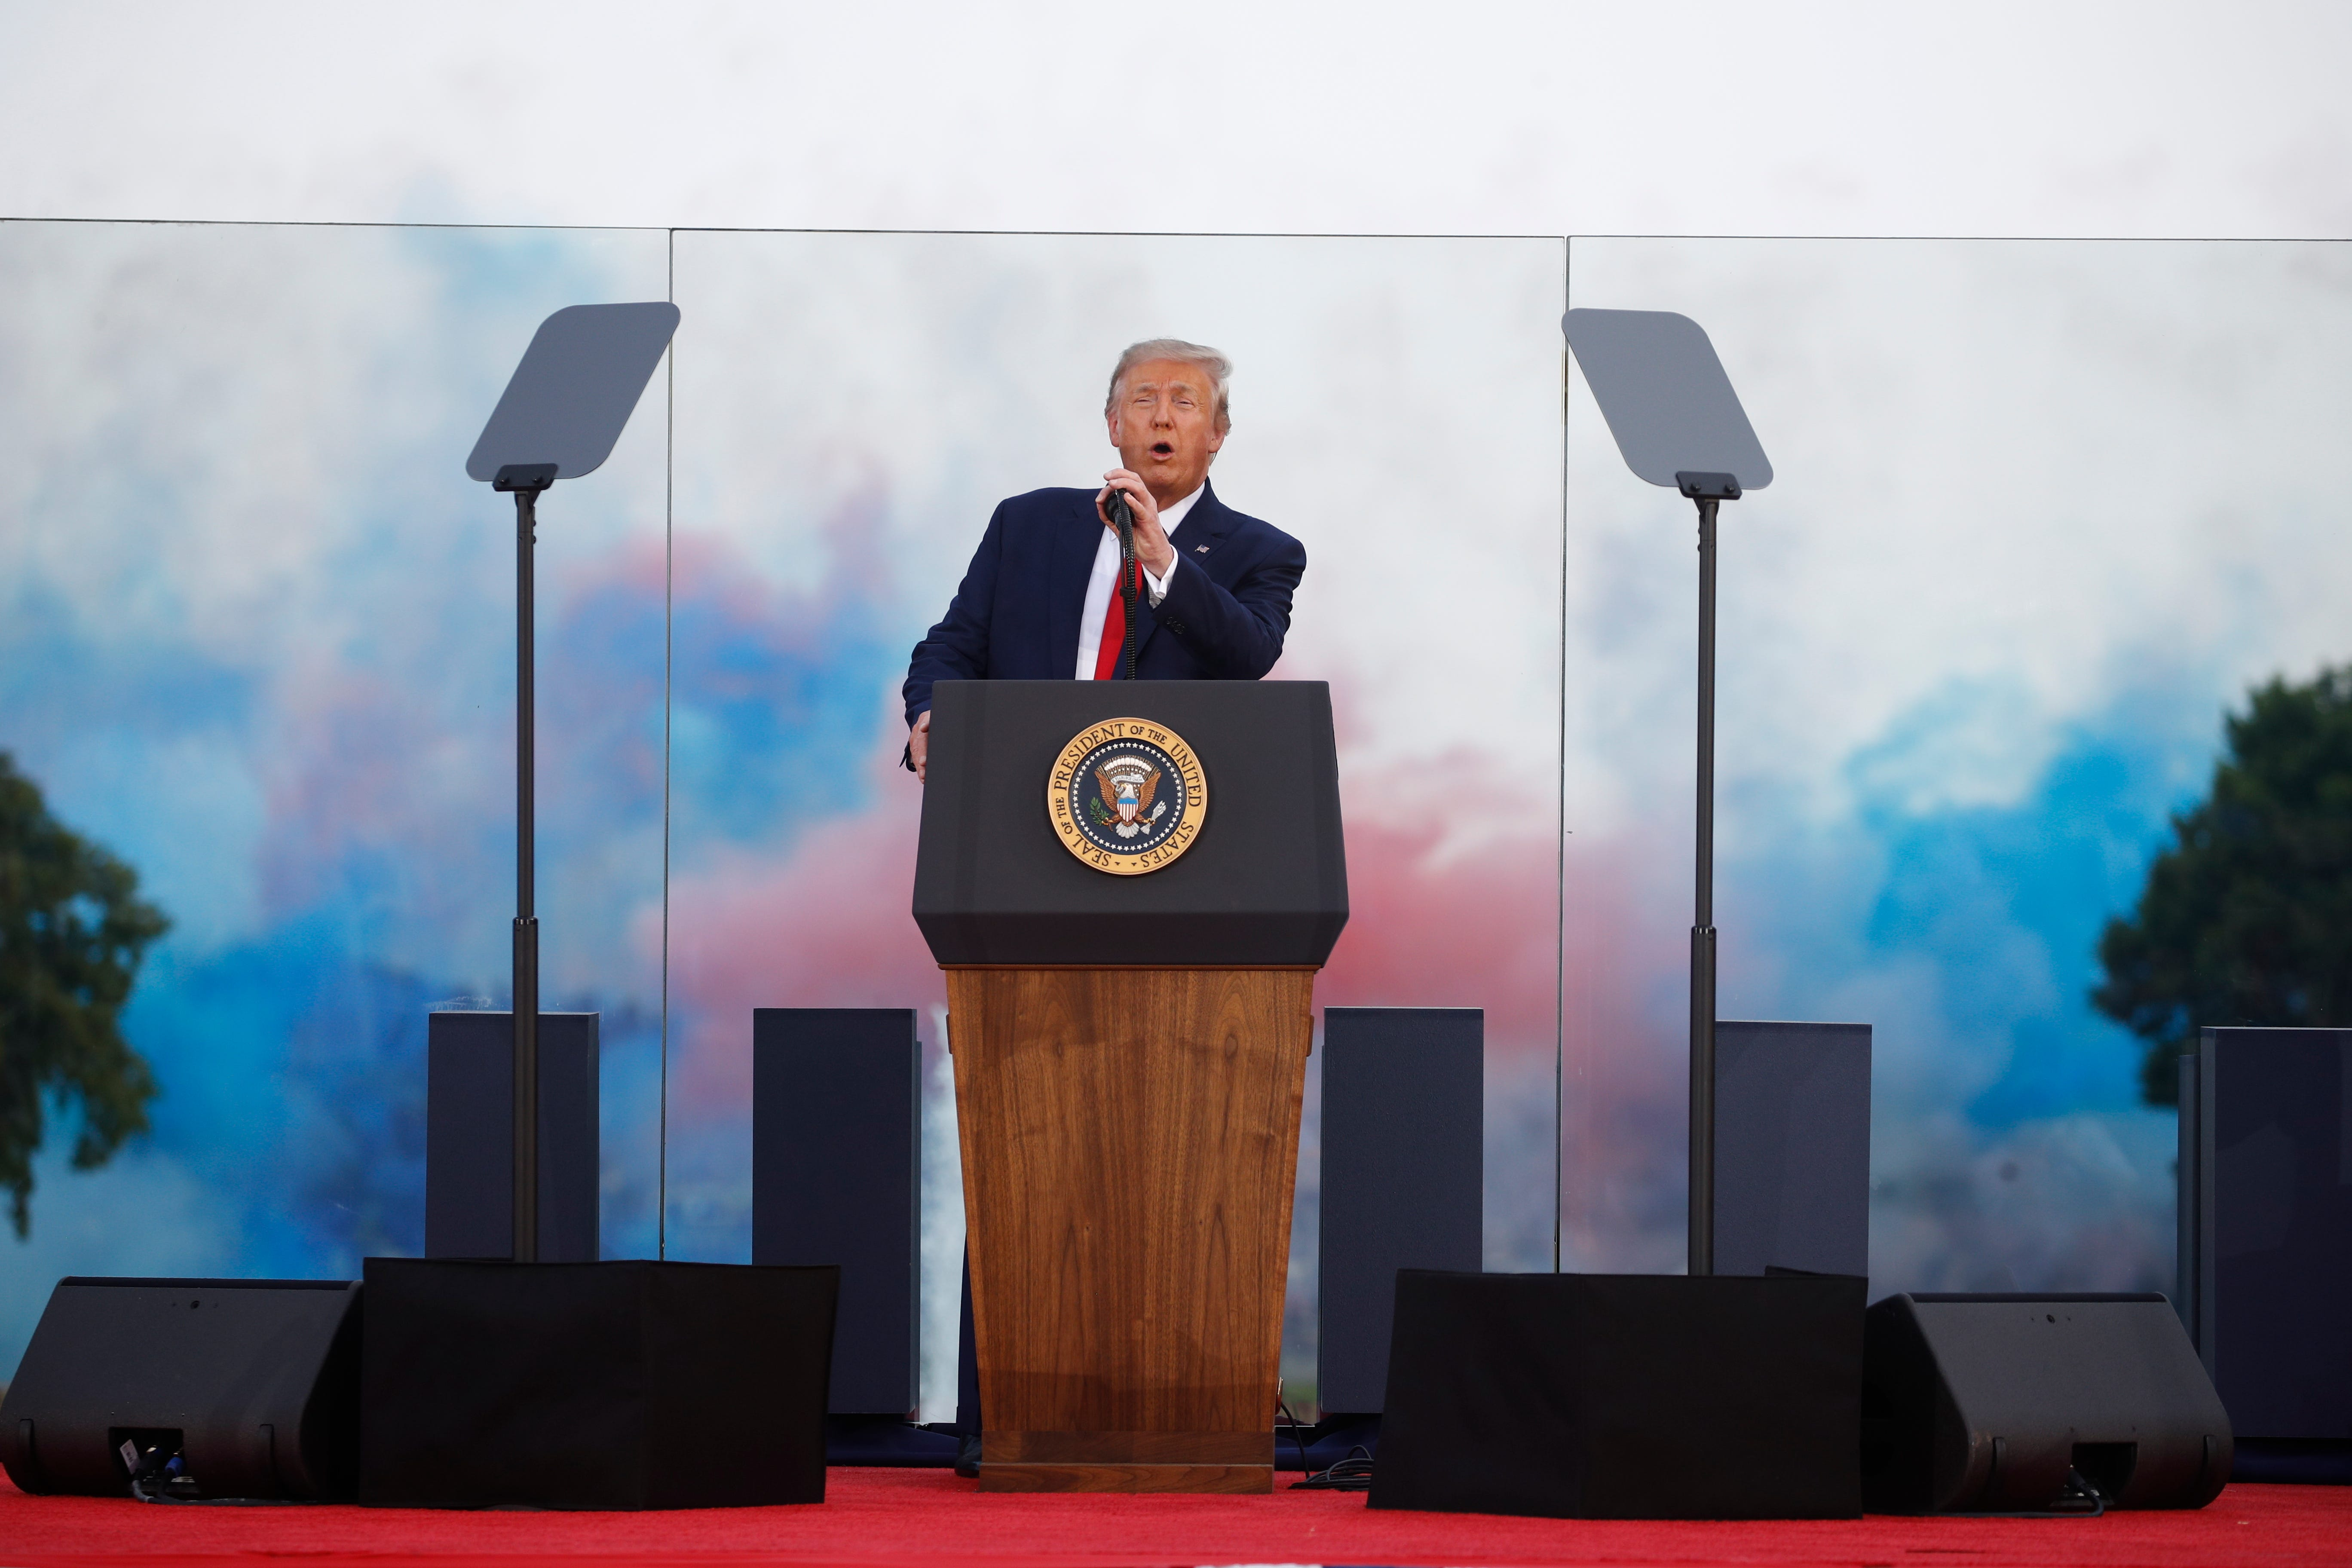 usatoday.com - Courtney Subramanian and Christal Hayes, USA TODAY - Republicans are really fed up': GOP increasingly splits with Trump as his polls drag